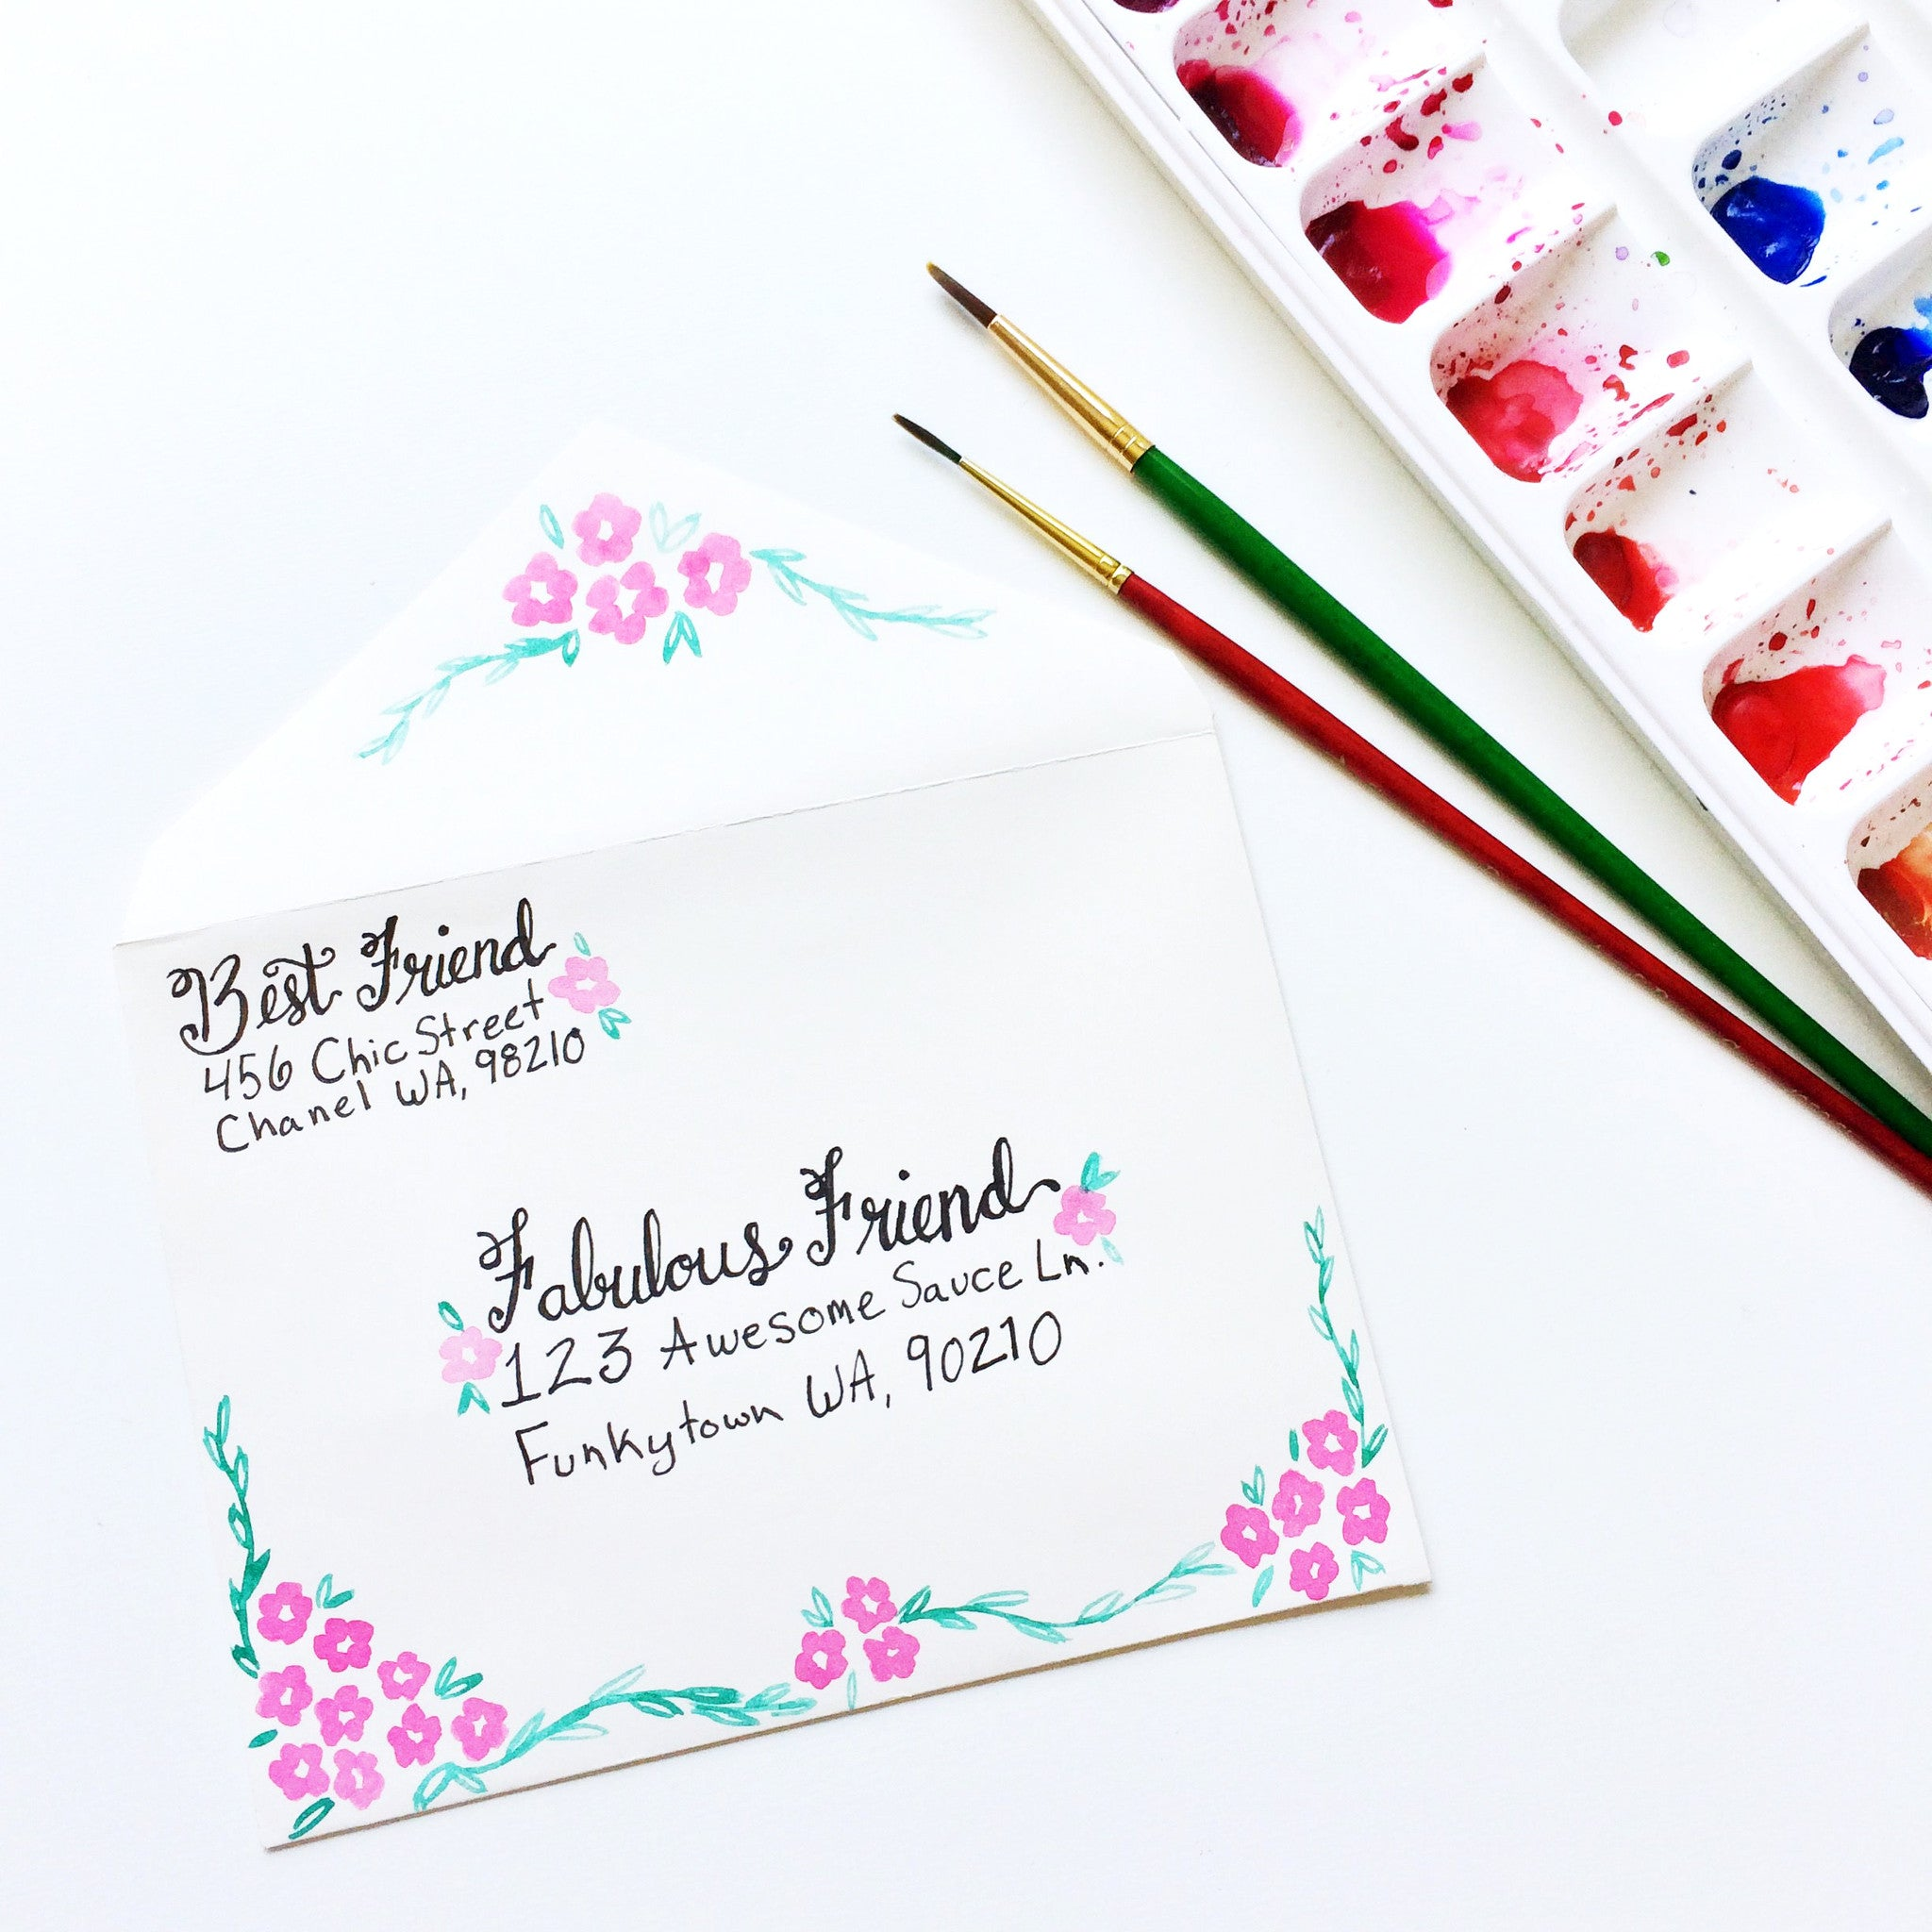 DIY Watercolor Floral Painted Envelope